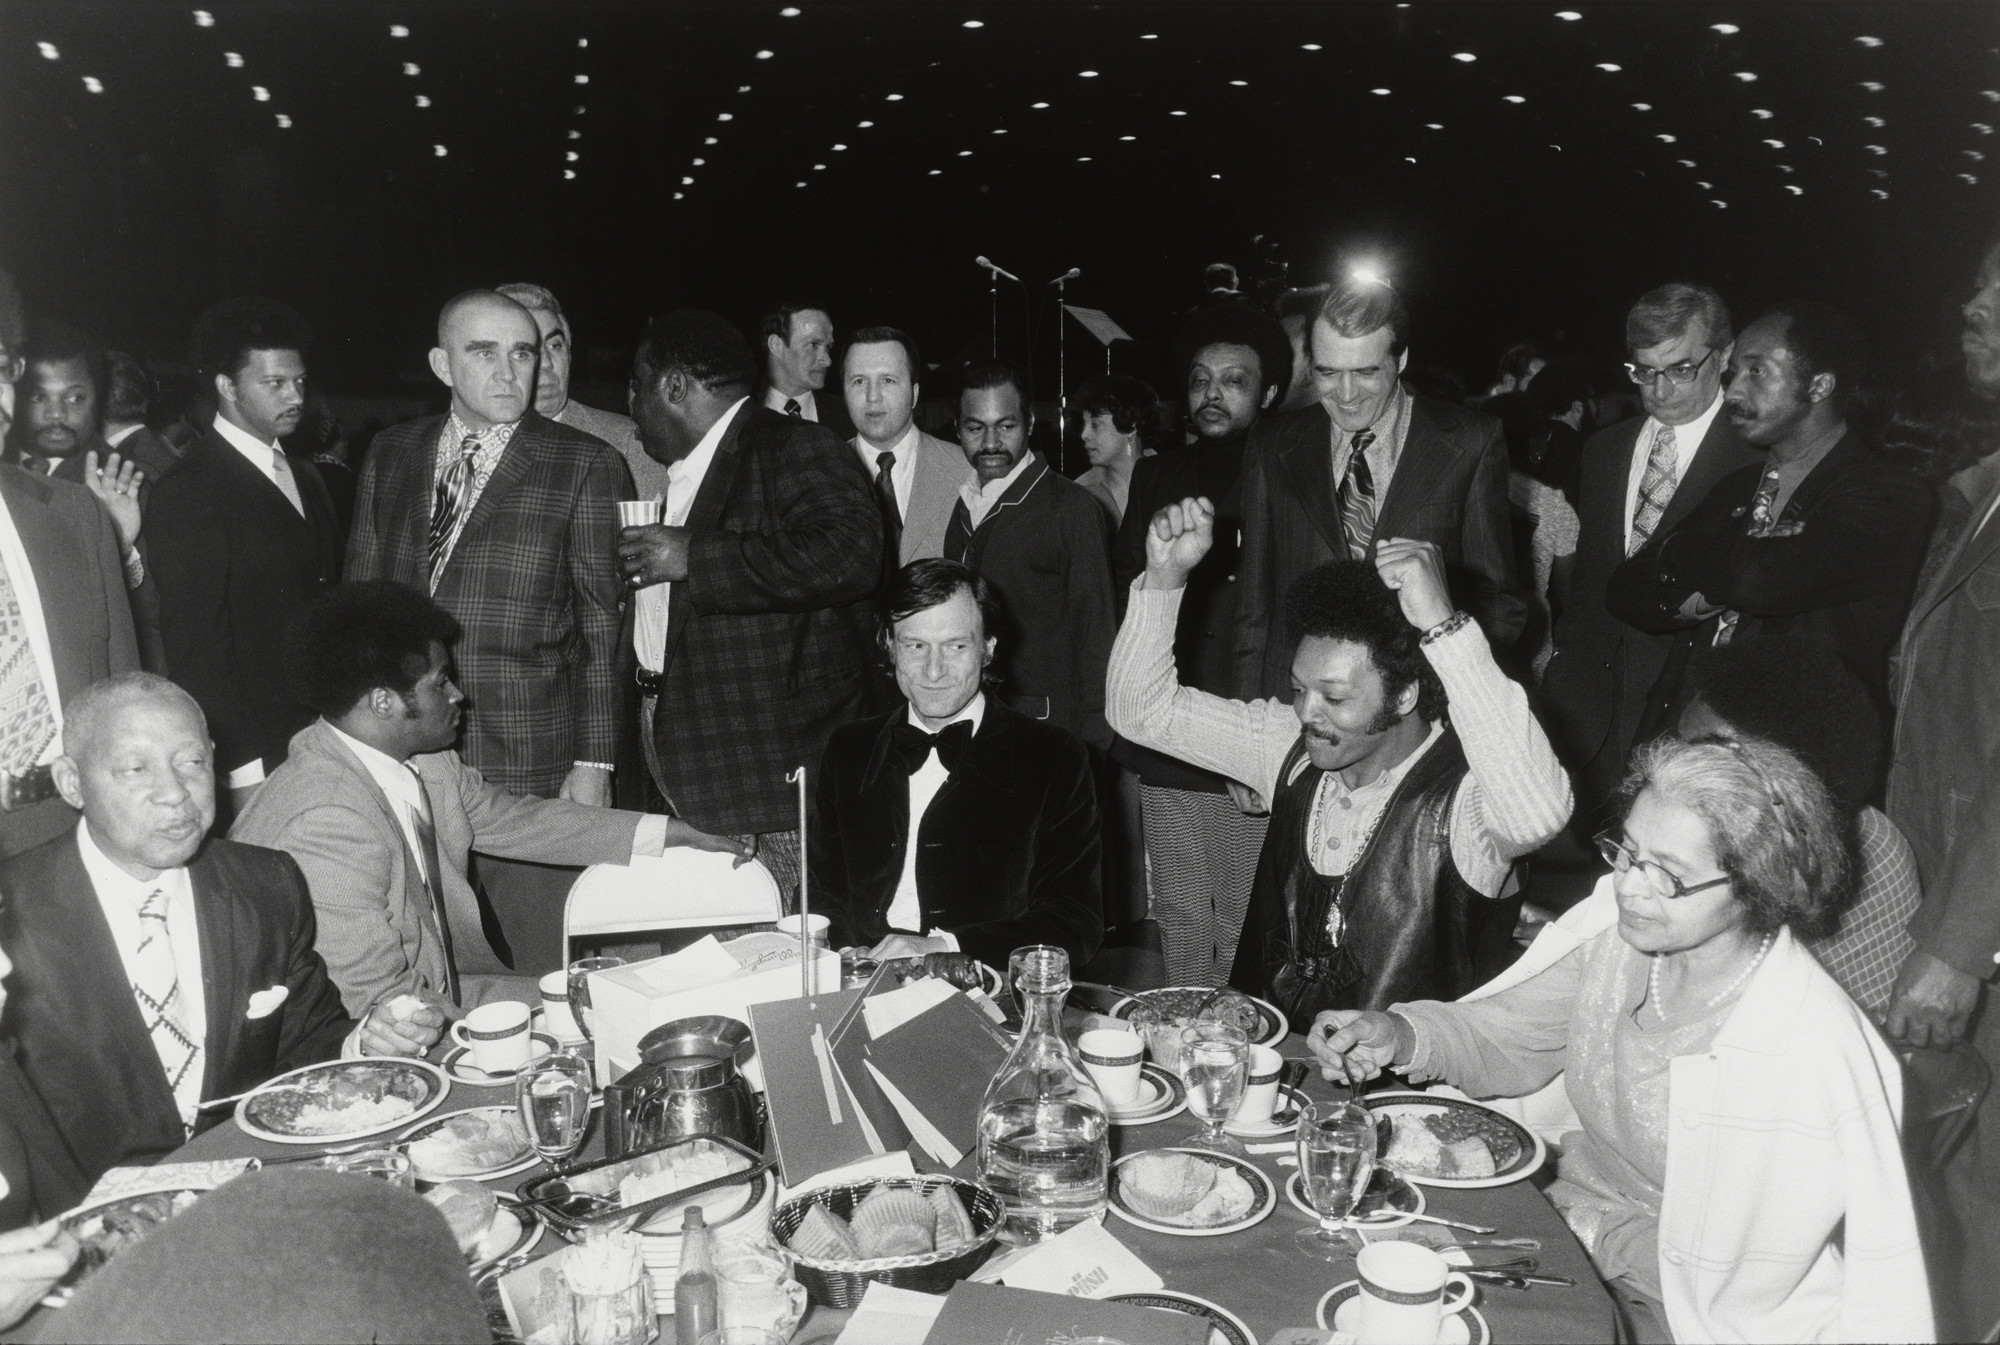 Garry Winogrand. Hugh Hefner and Jesse Jackson, Operation PUSH Fundraiser, Chicago from the portfolio Big Shots. 1972